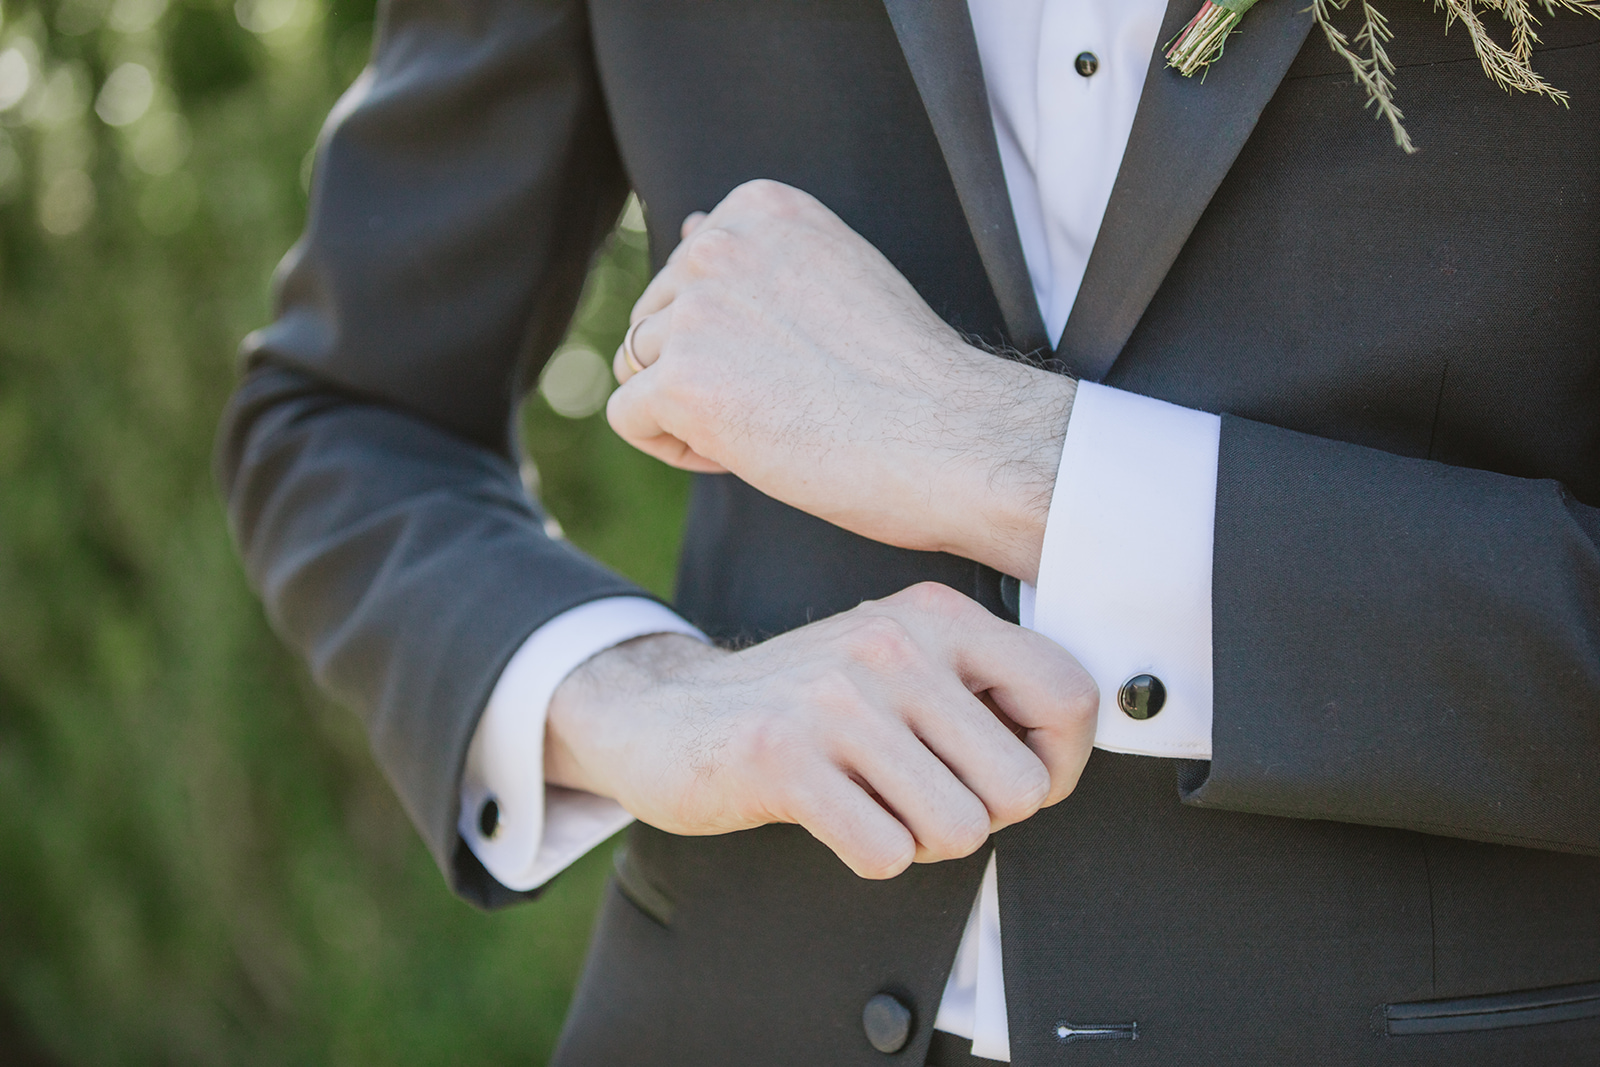 Classic Black Tux for the groom from Formally Modern Tuxedo